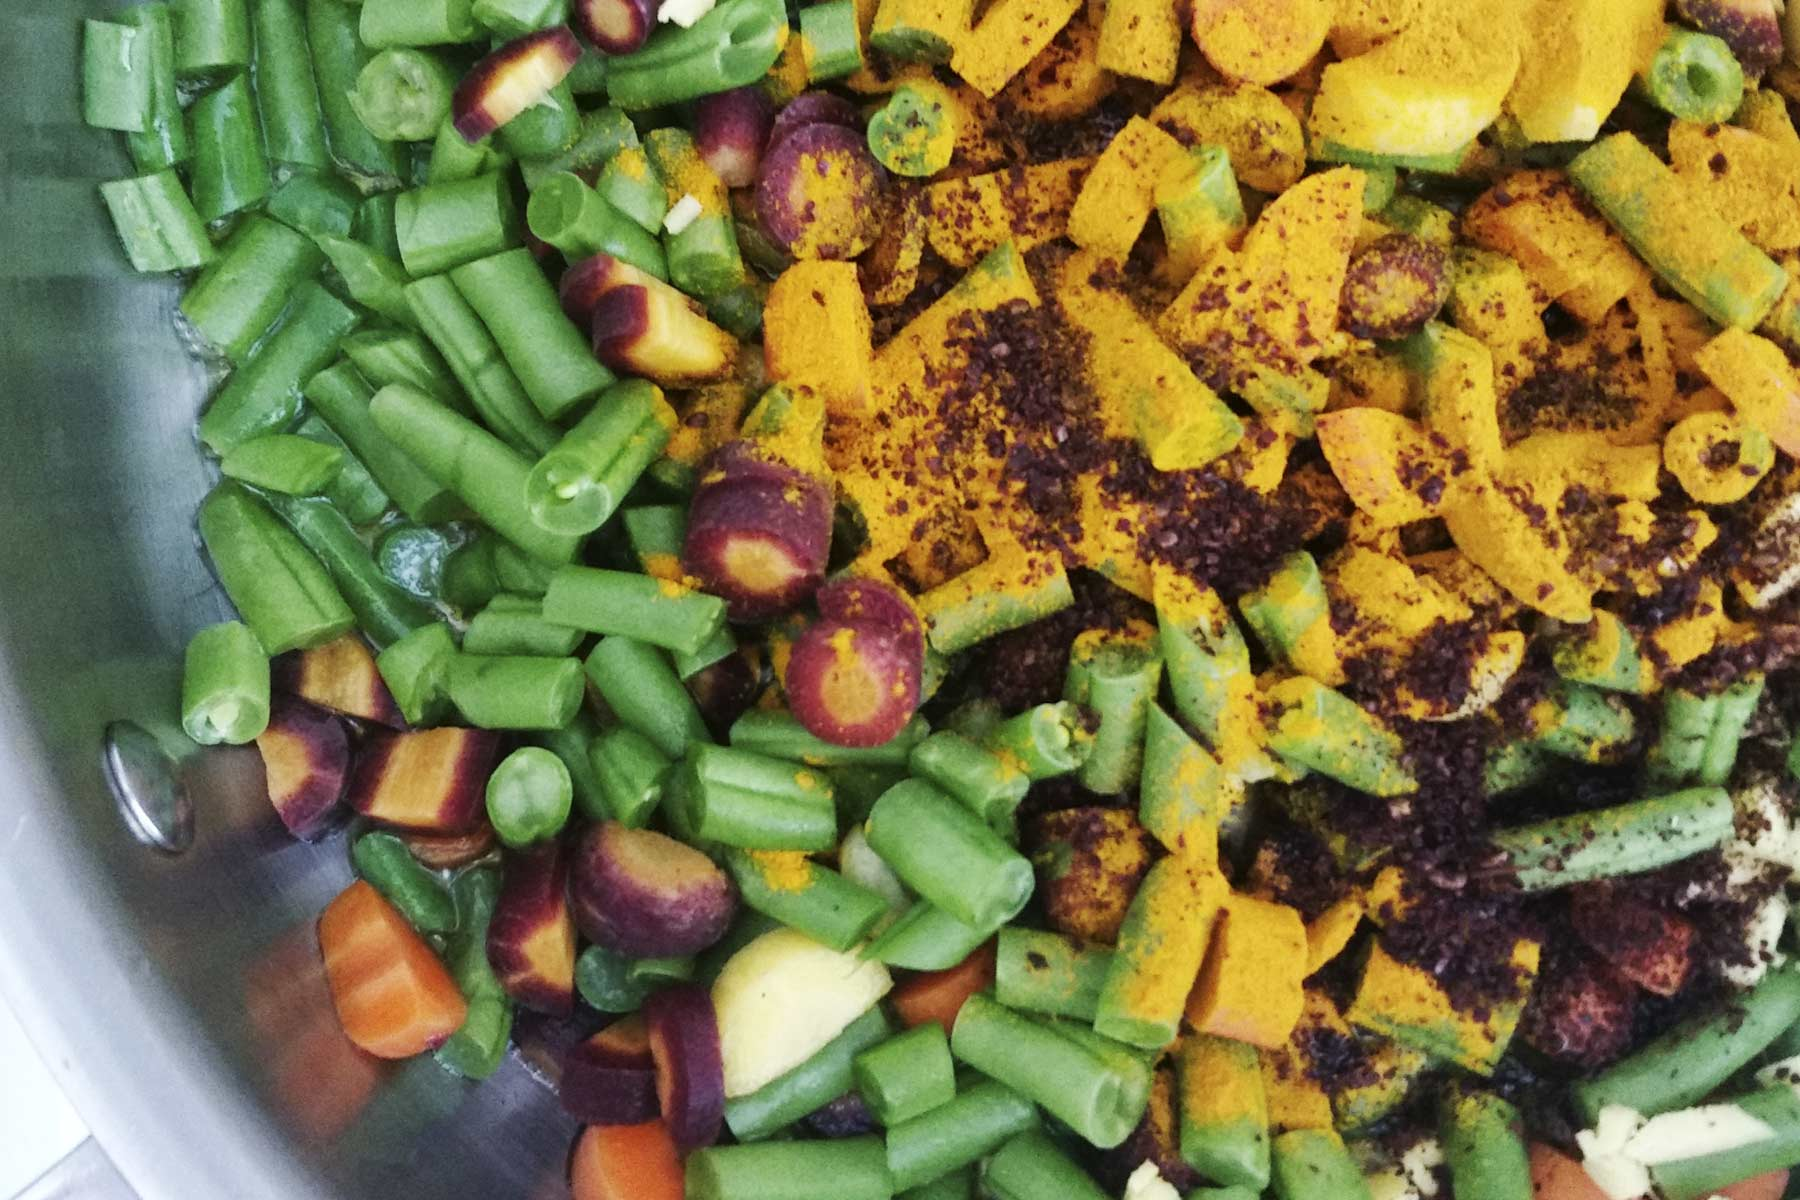 Turmeric and Veggies